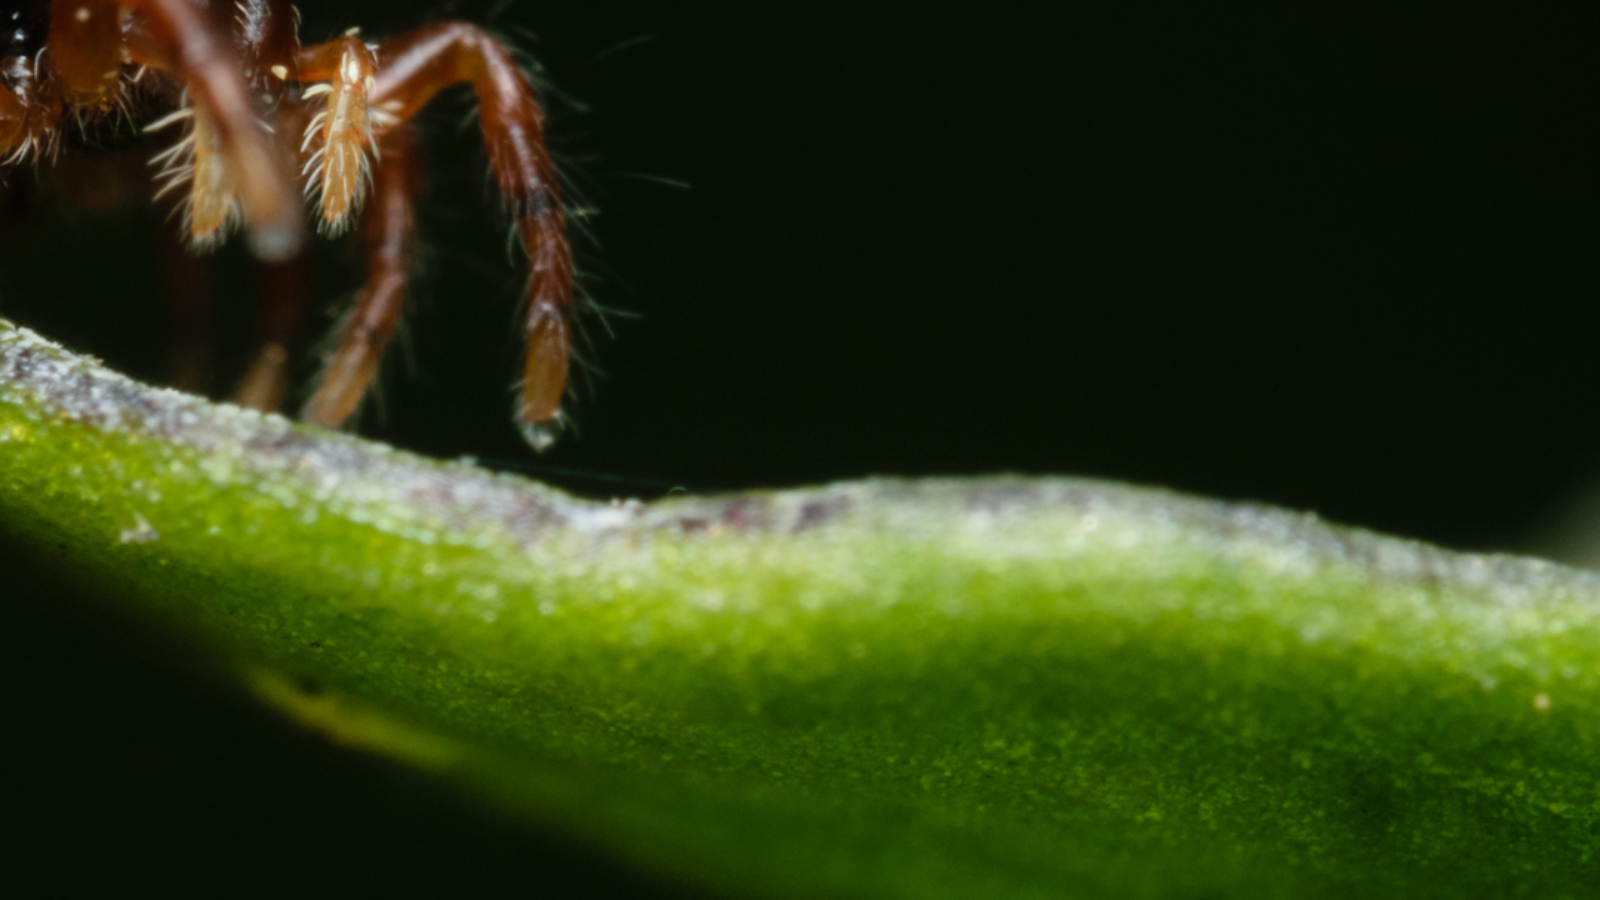 Super Scary Spider Featured Image